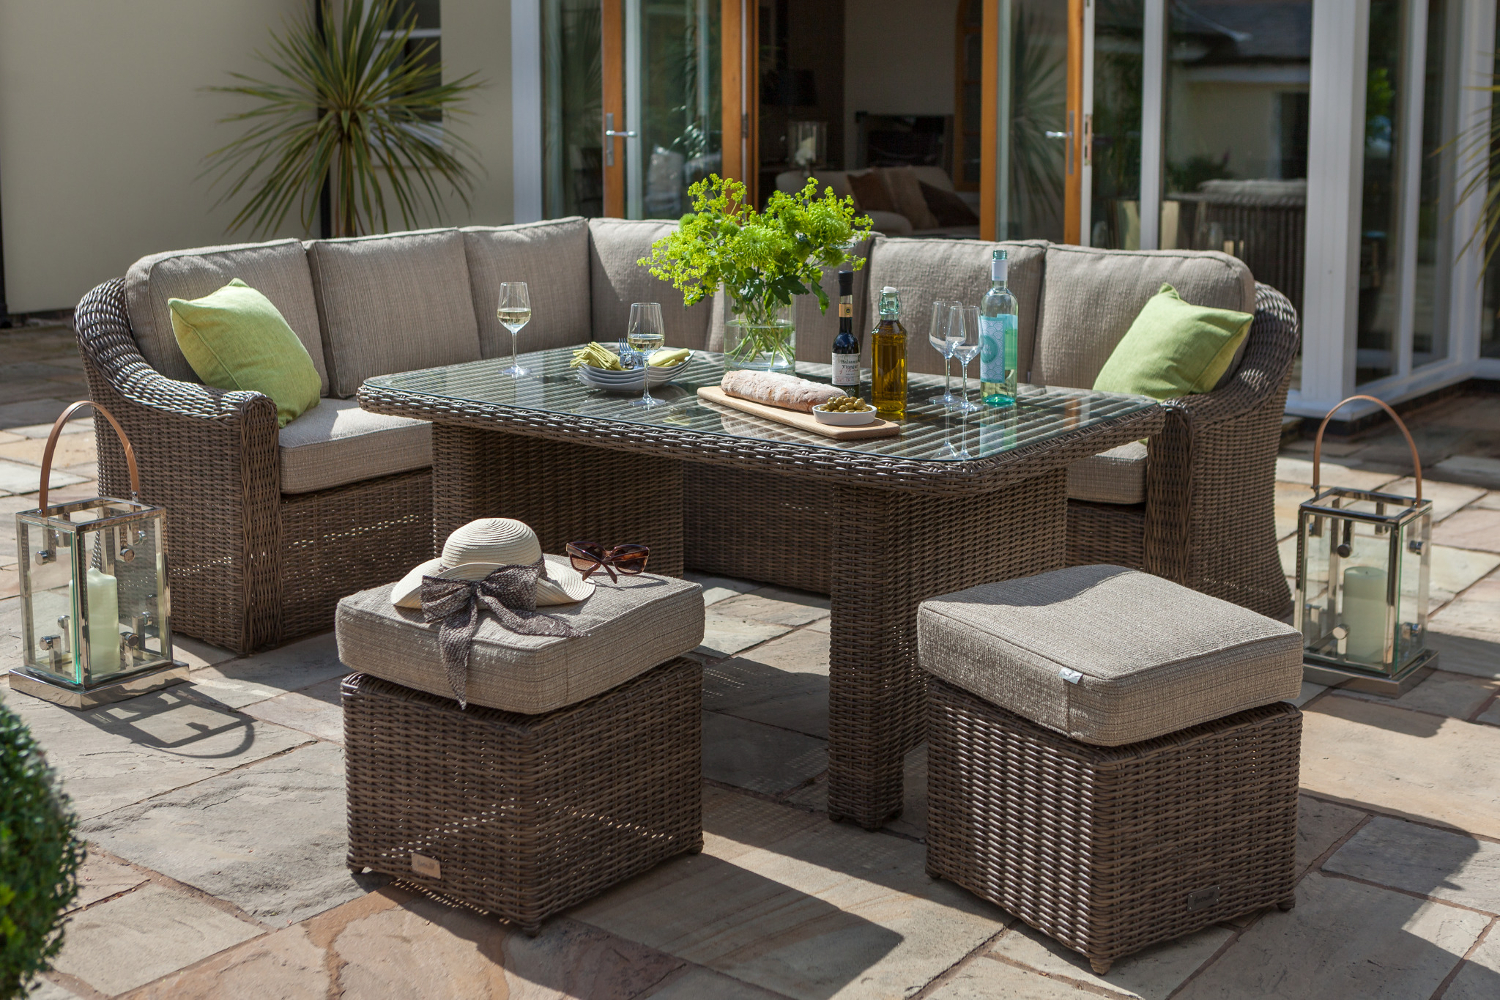 Small image of hartman bali casual dining furniture set in chestnut tweed